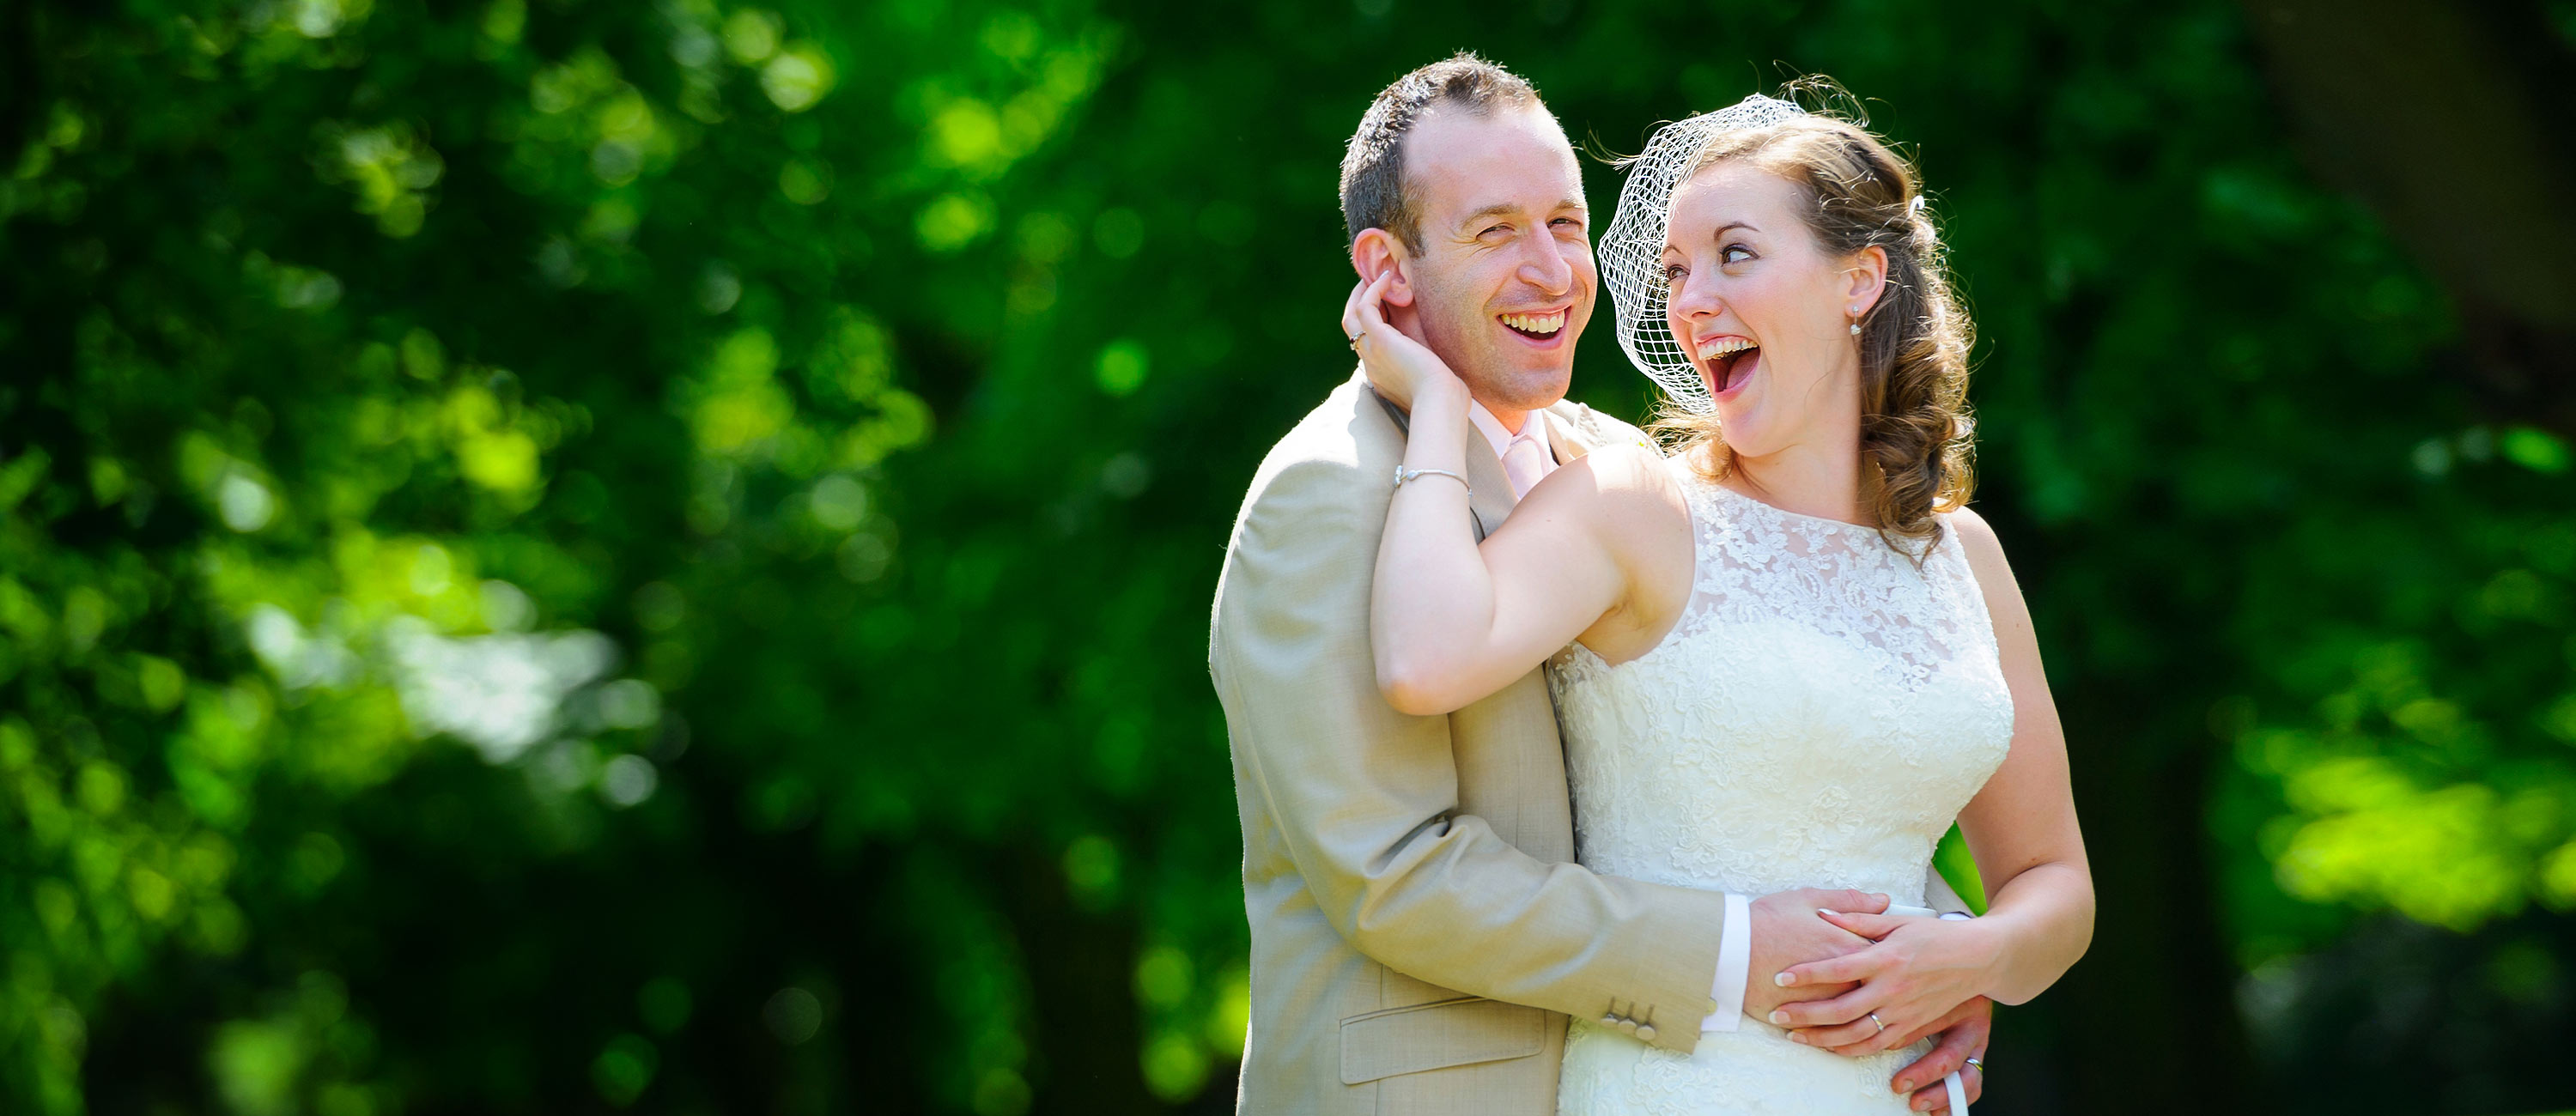 Recommended Wedding Photographe Bedford